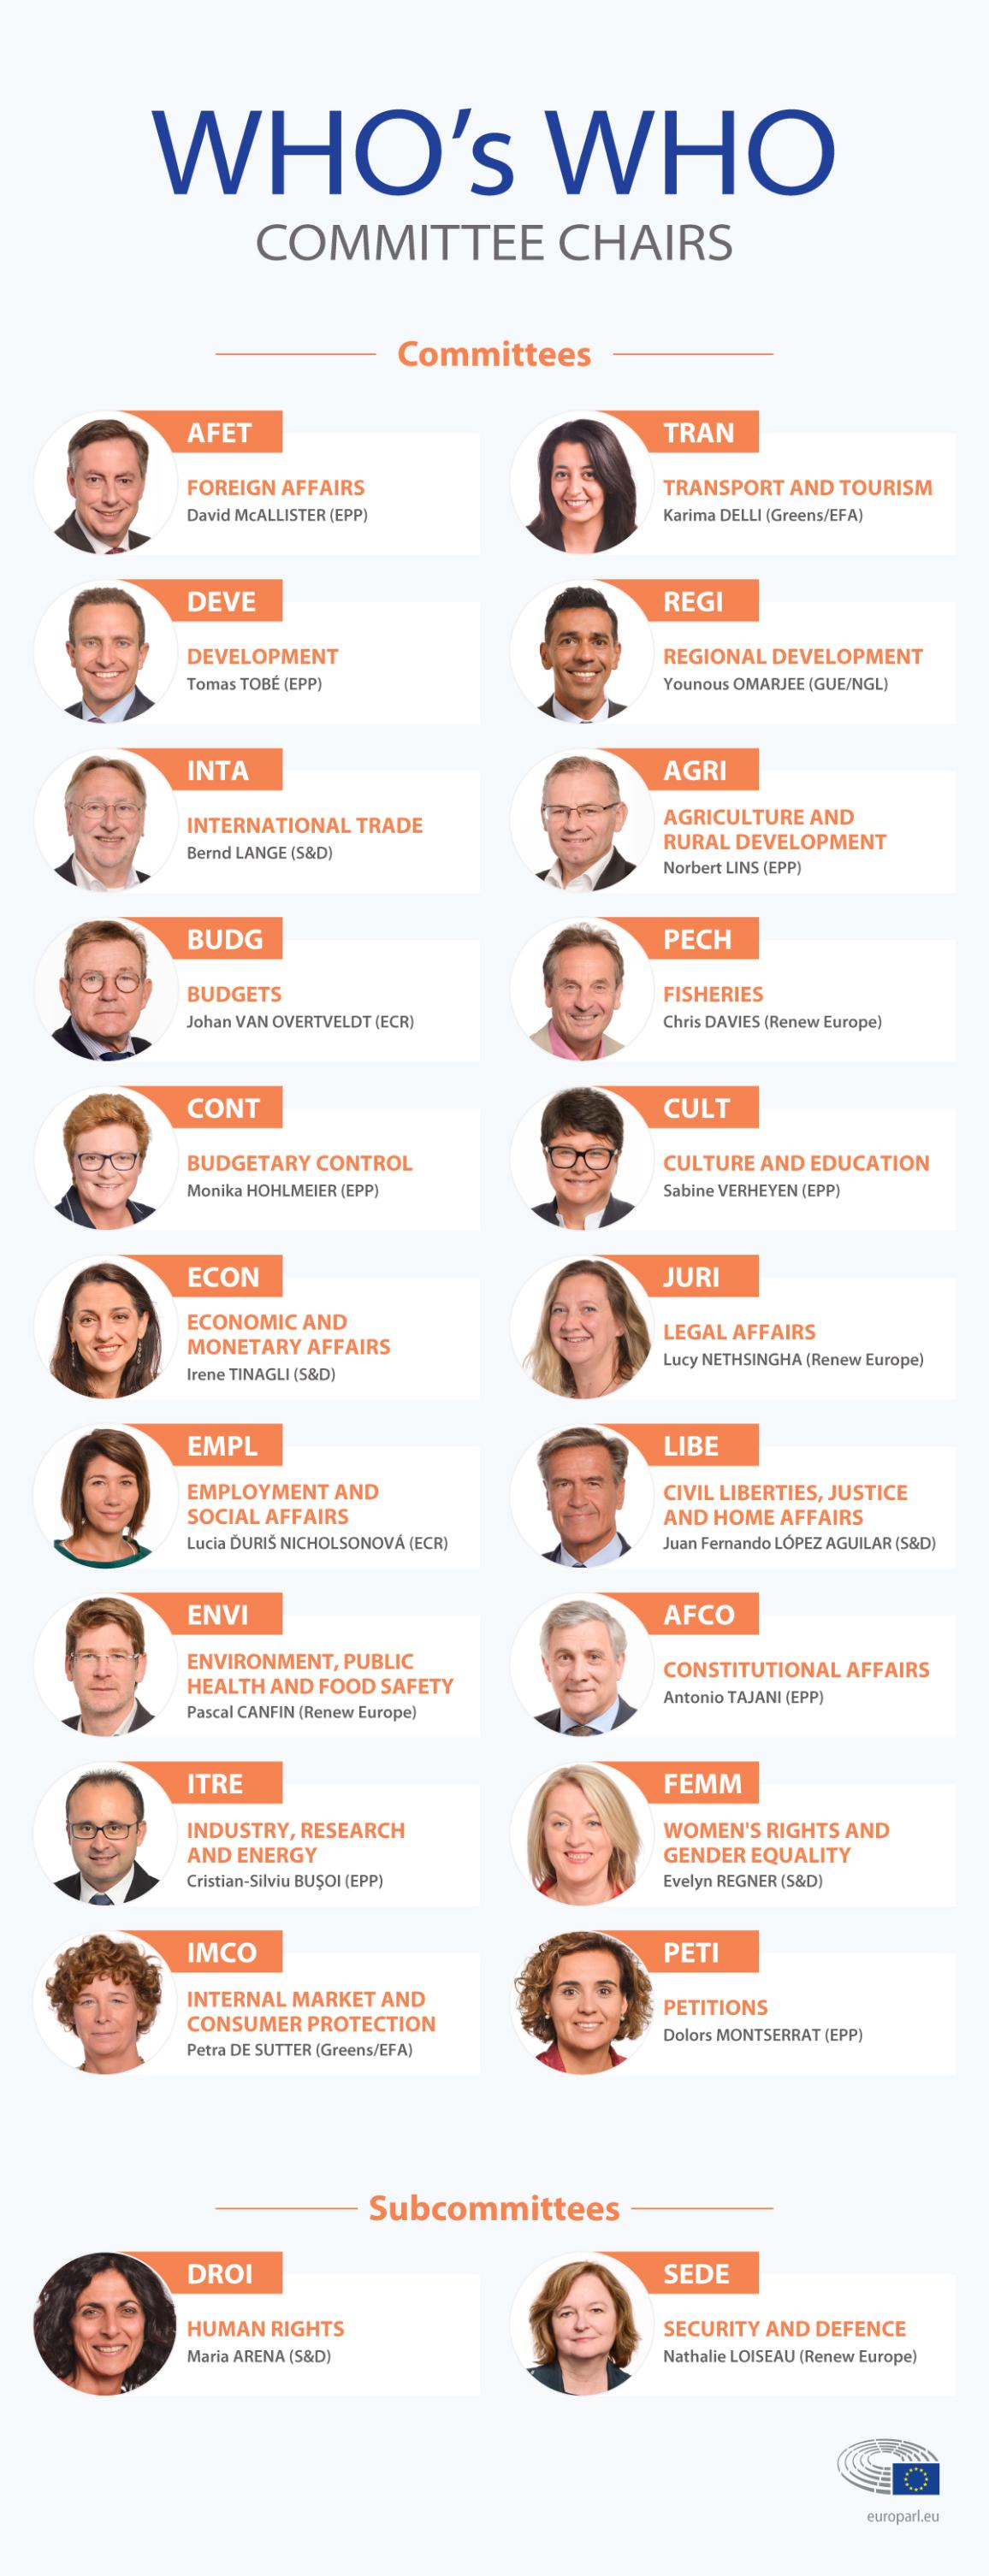 infographic on who's who - Committee chairs